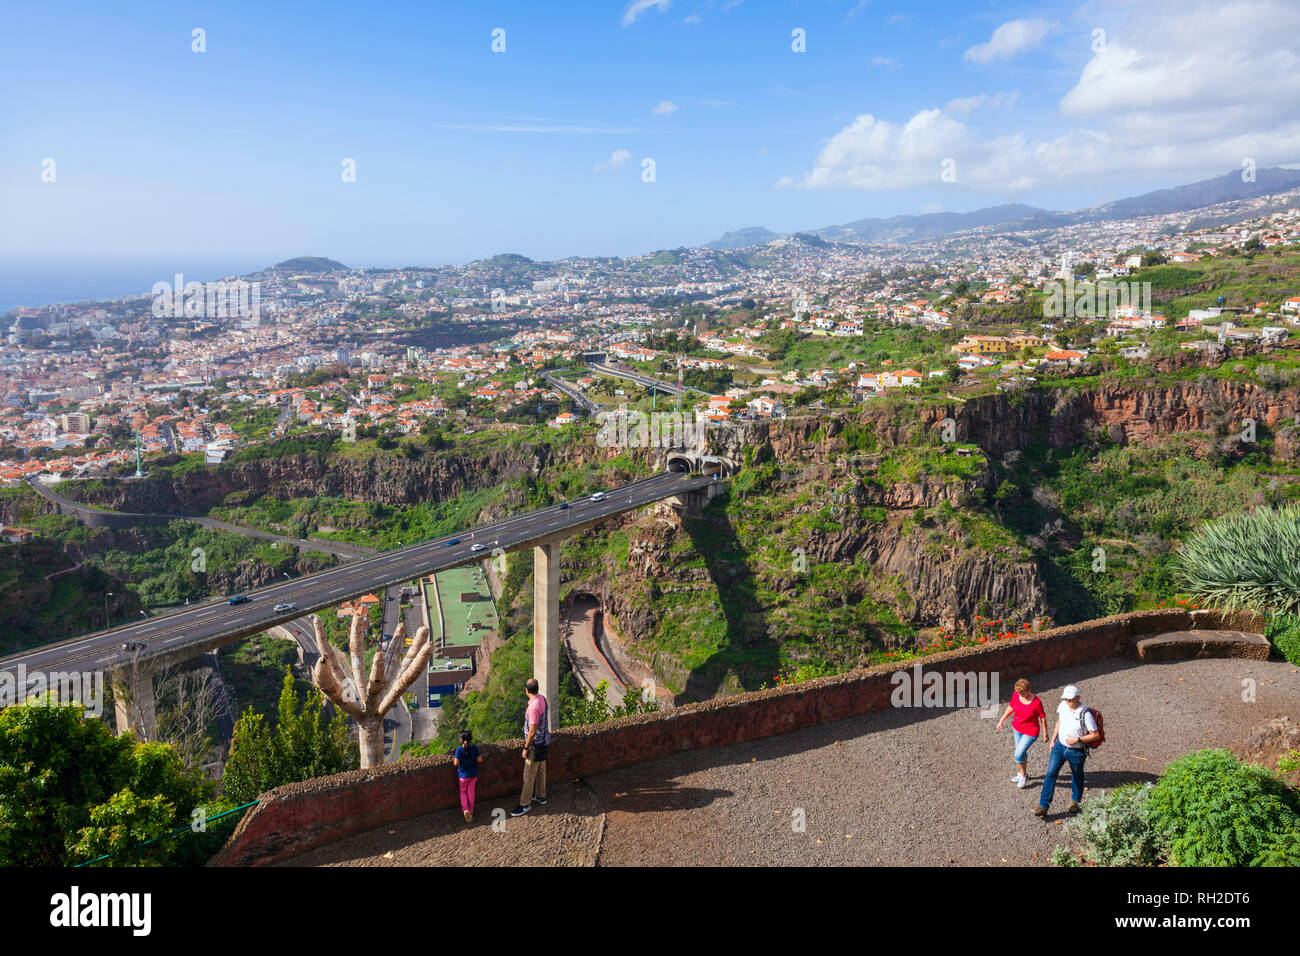 Tourists overlooking Funchal from the Botanical gardens FUNCHAL BOTANICAL GARDENS Jardim Botanico above the capital city of funchal, Madeira, Portugal - Stock Image